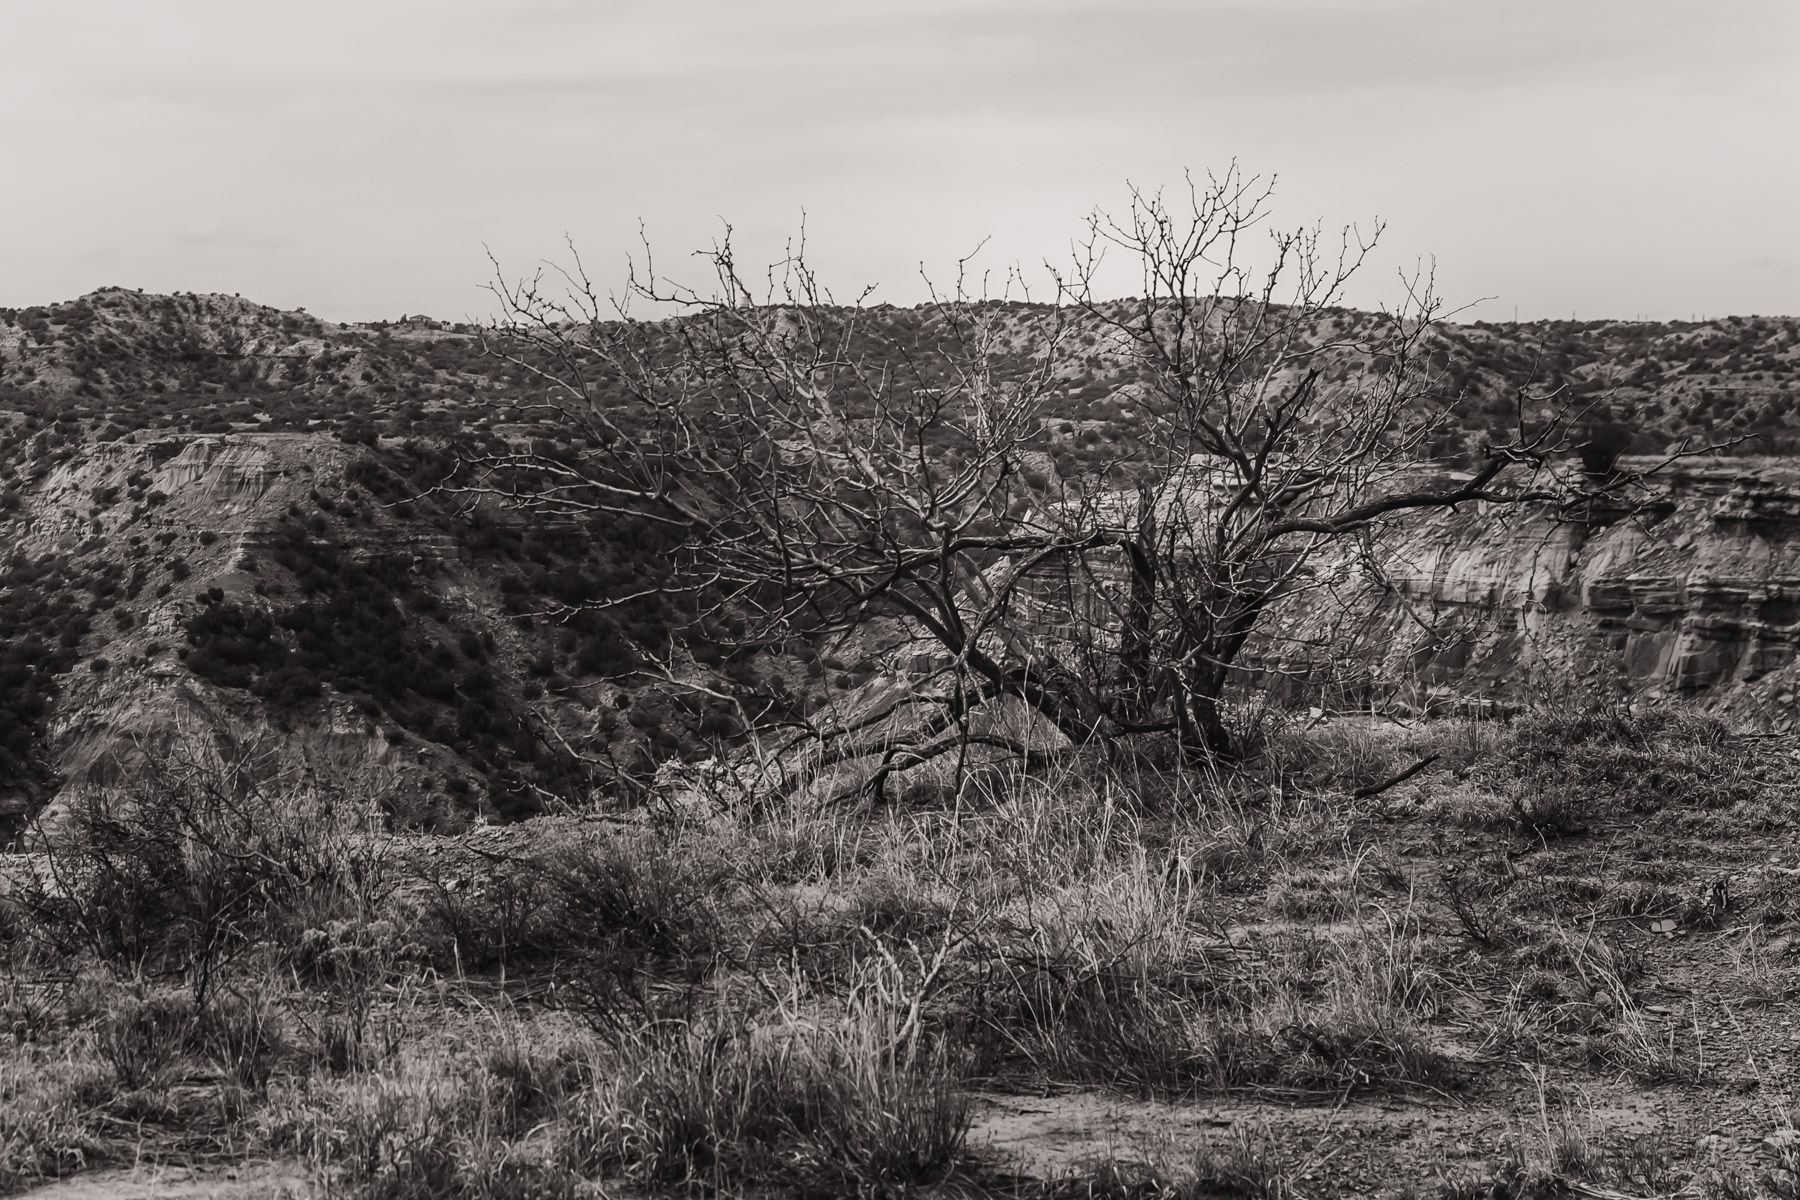 A lonely tree at Palo Duro Canyon, Texas.